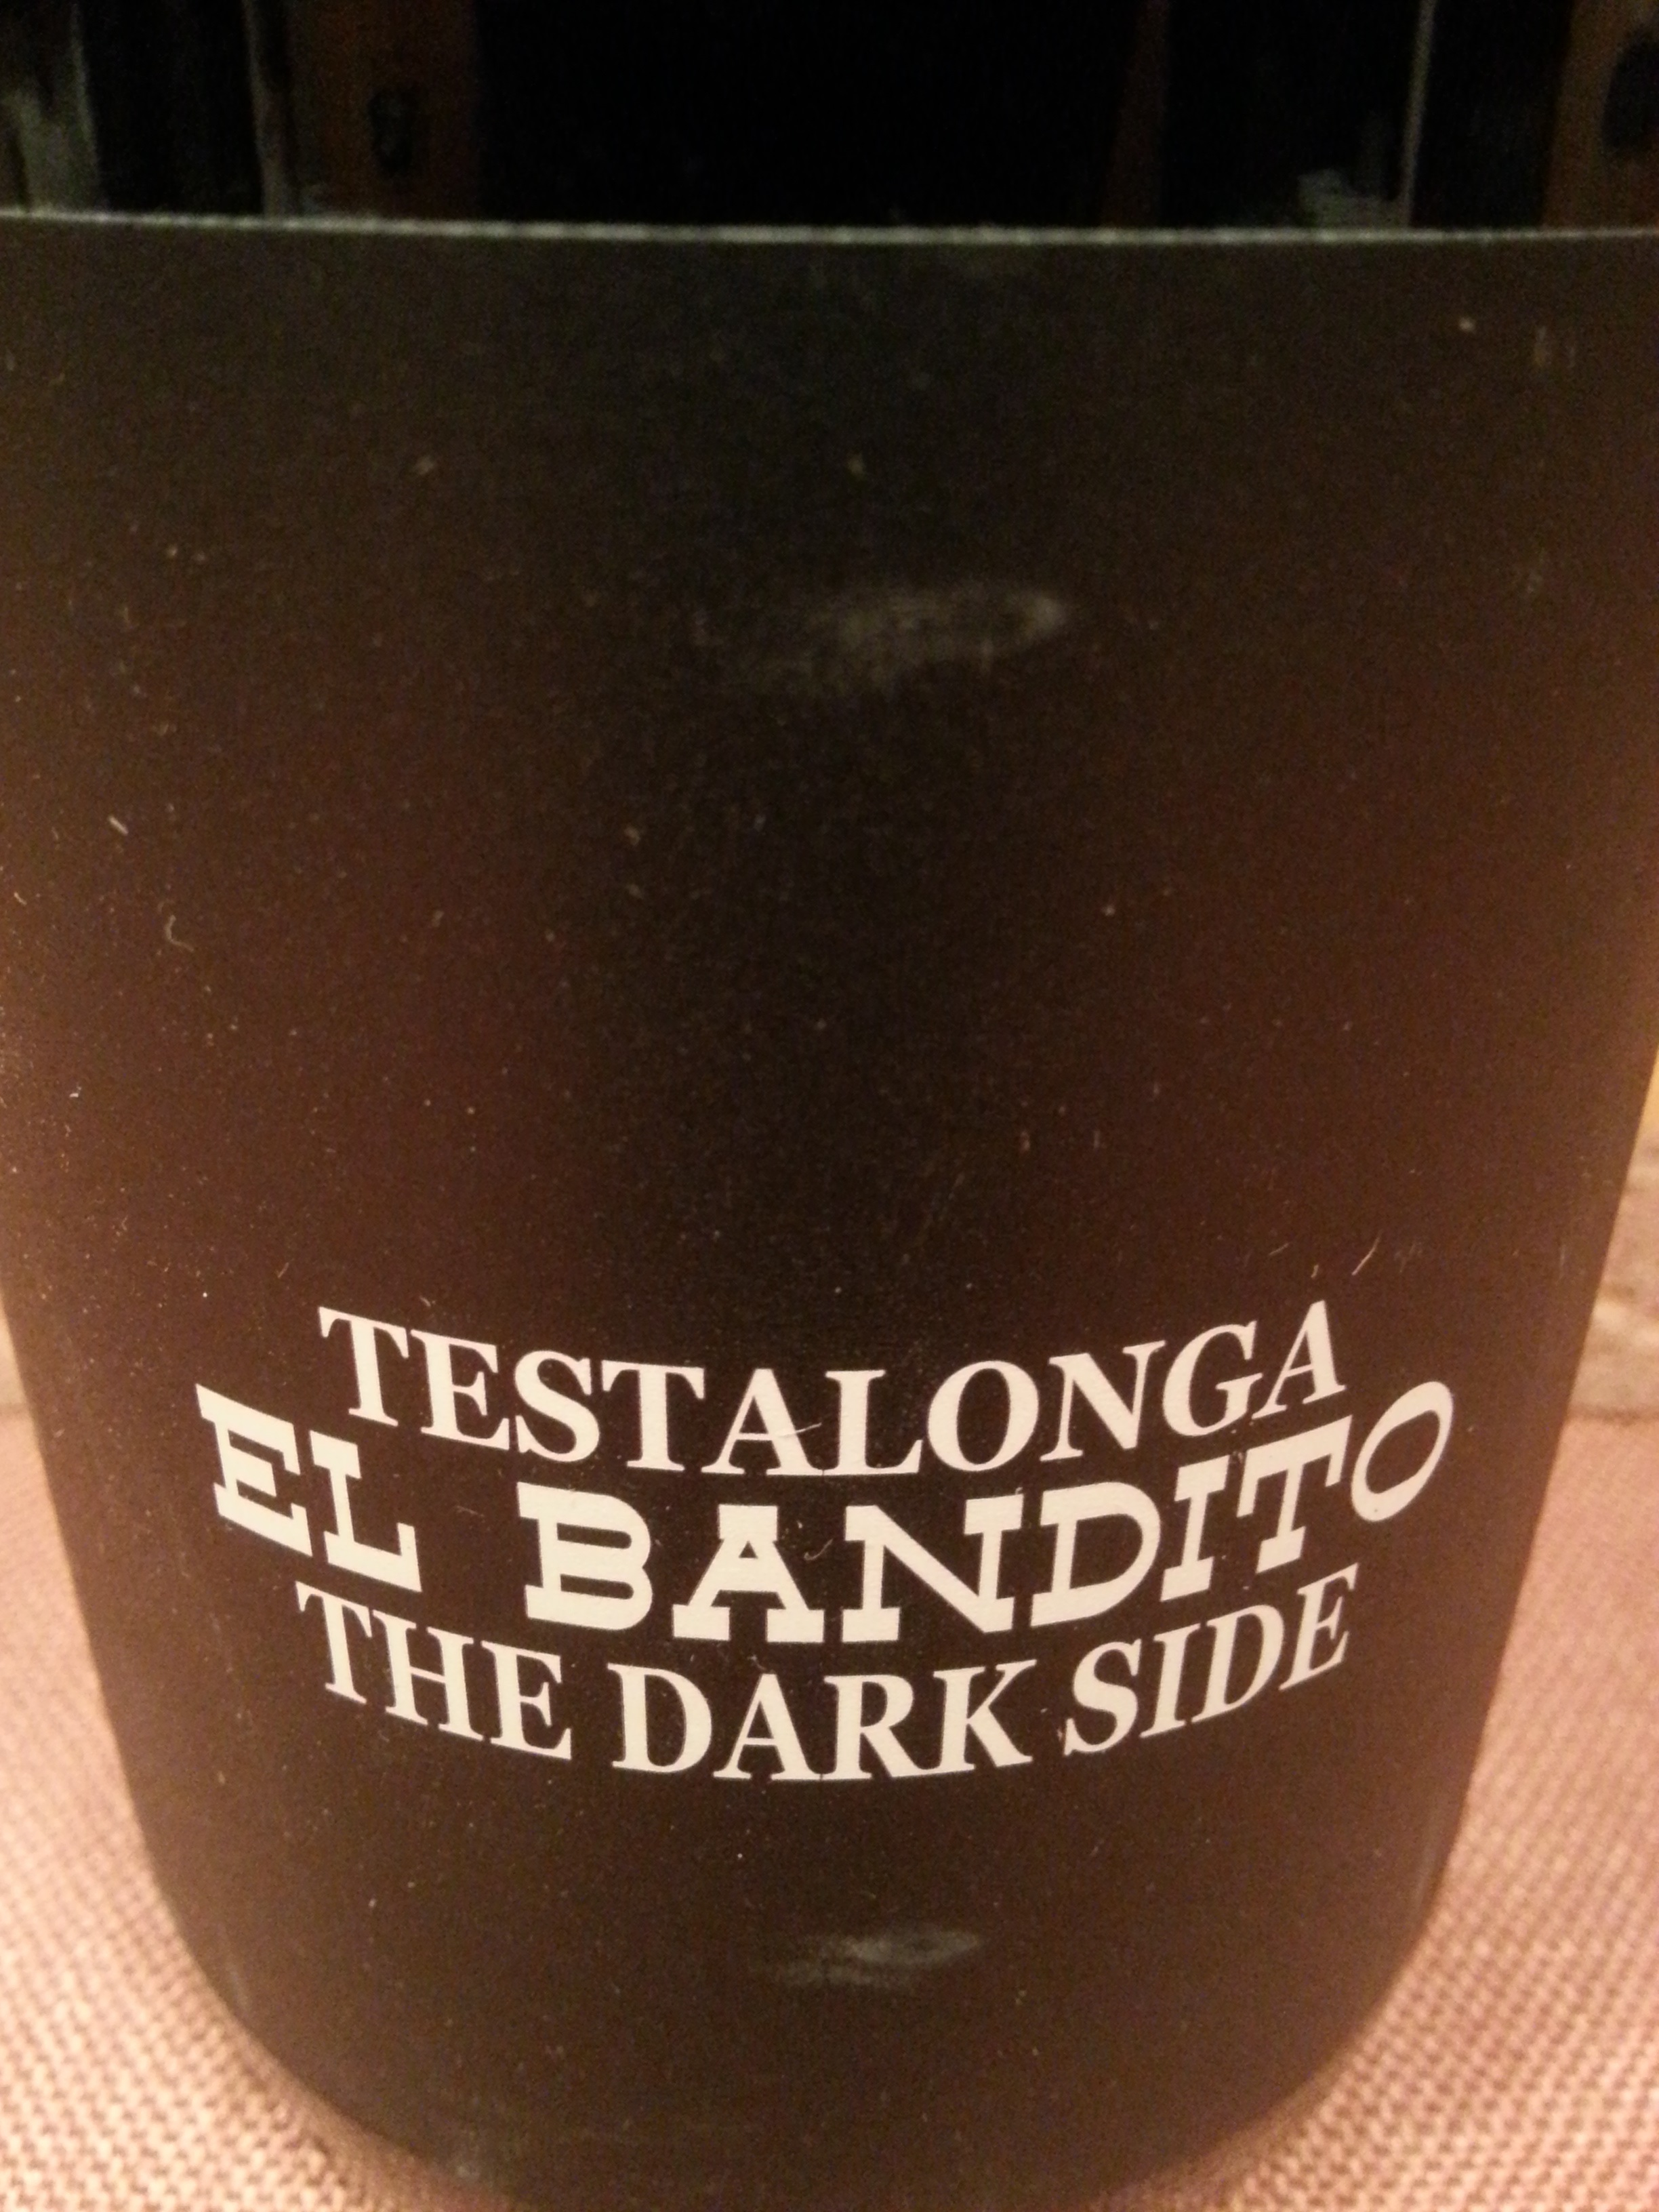 2016 El Bandito The Dark Side | Testalonga